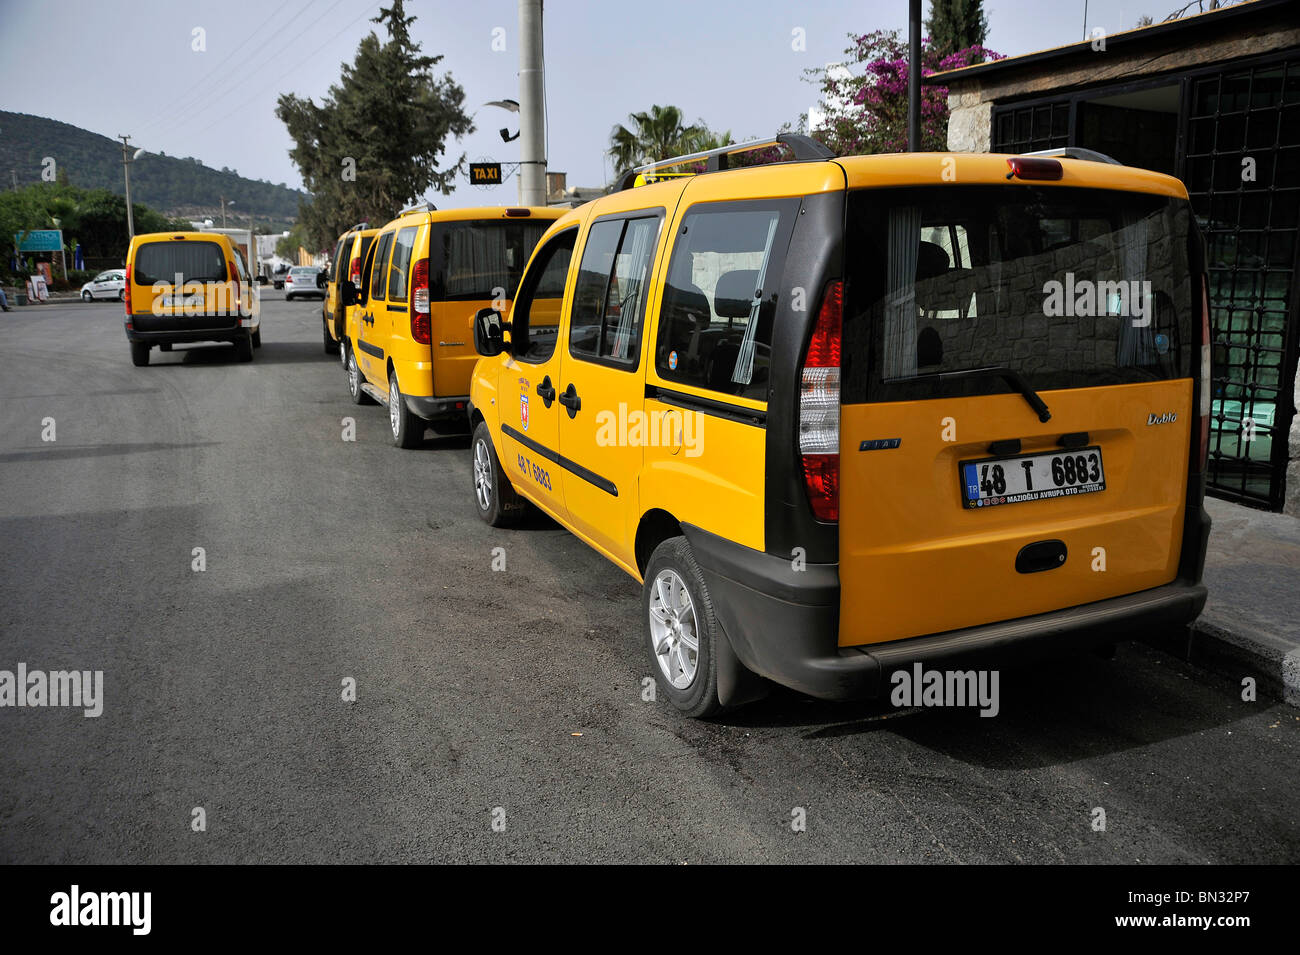 People Carrier Taxis Lined Up On Taxi Rank Torba Turkey Stock Photo